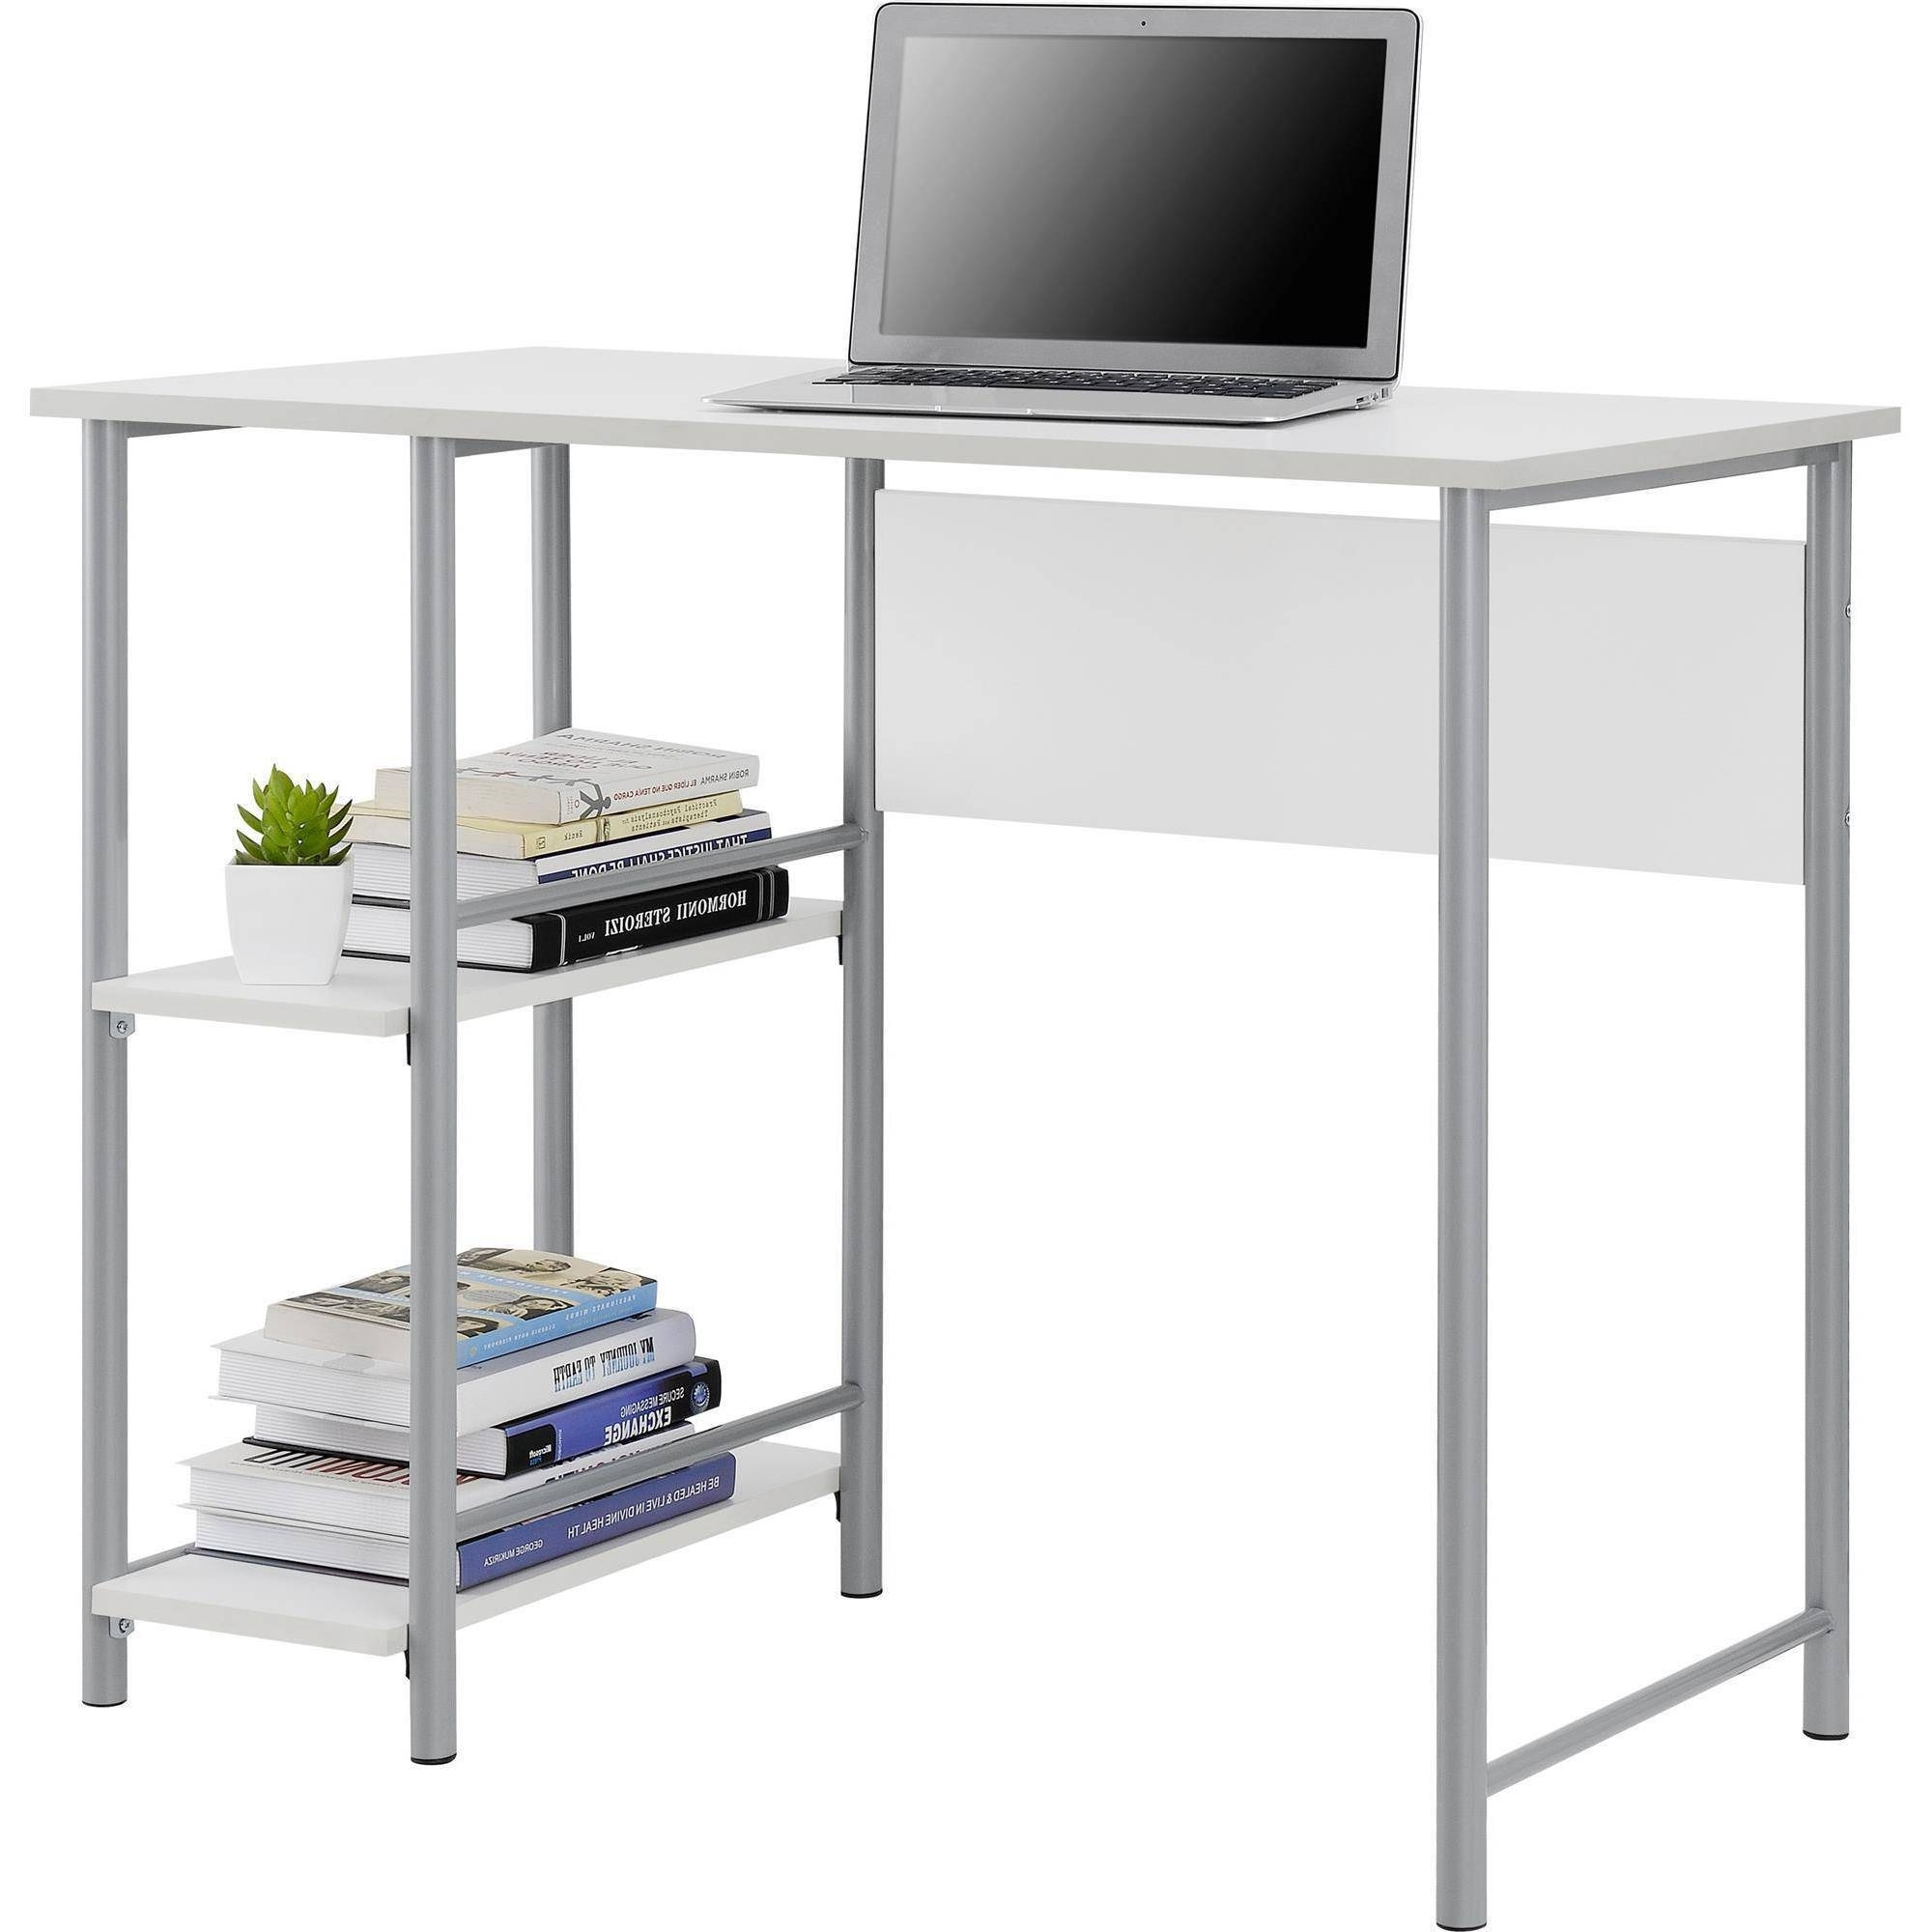 Computer Desks At Walmart With Regard To Most Current Mainstays Computer Desk, Multiple Colors – Walmart (View 19 of 20)